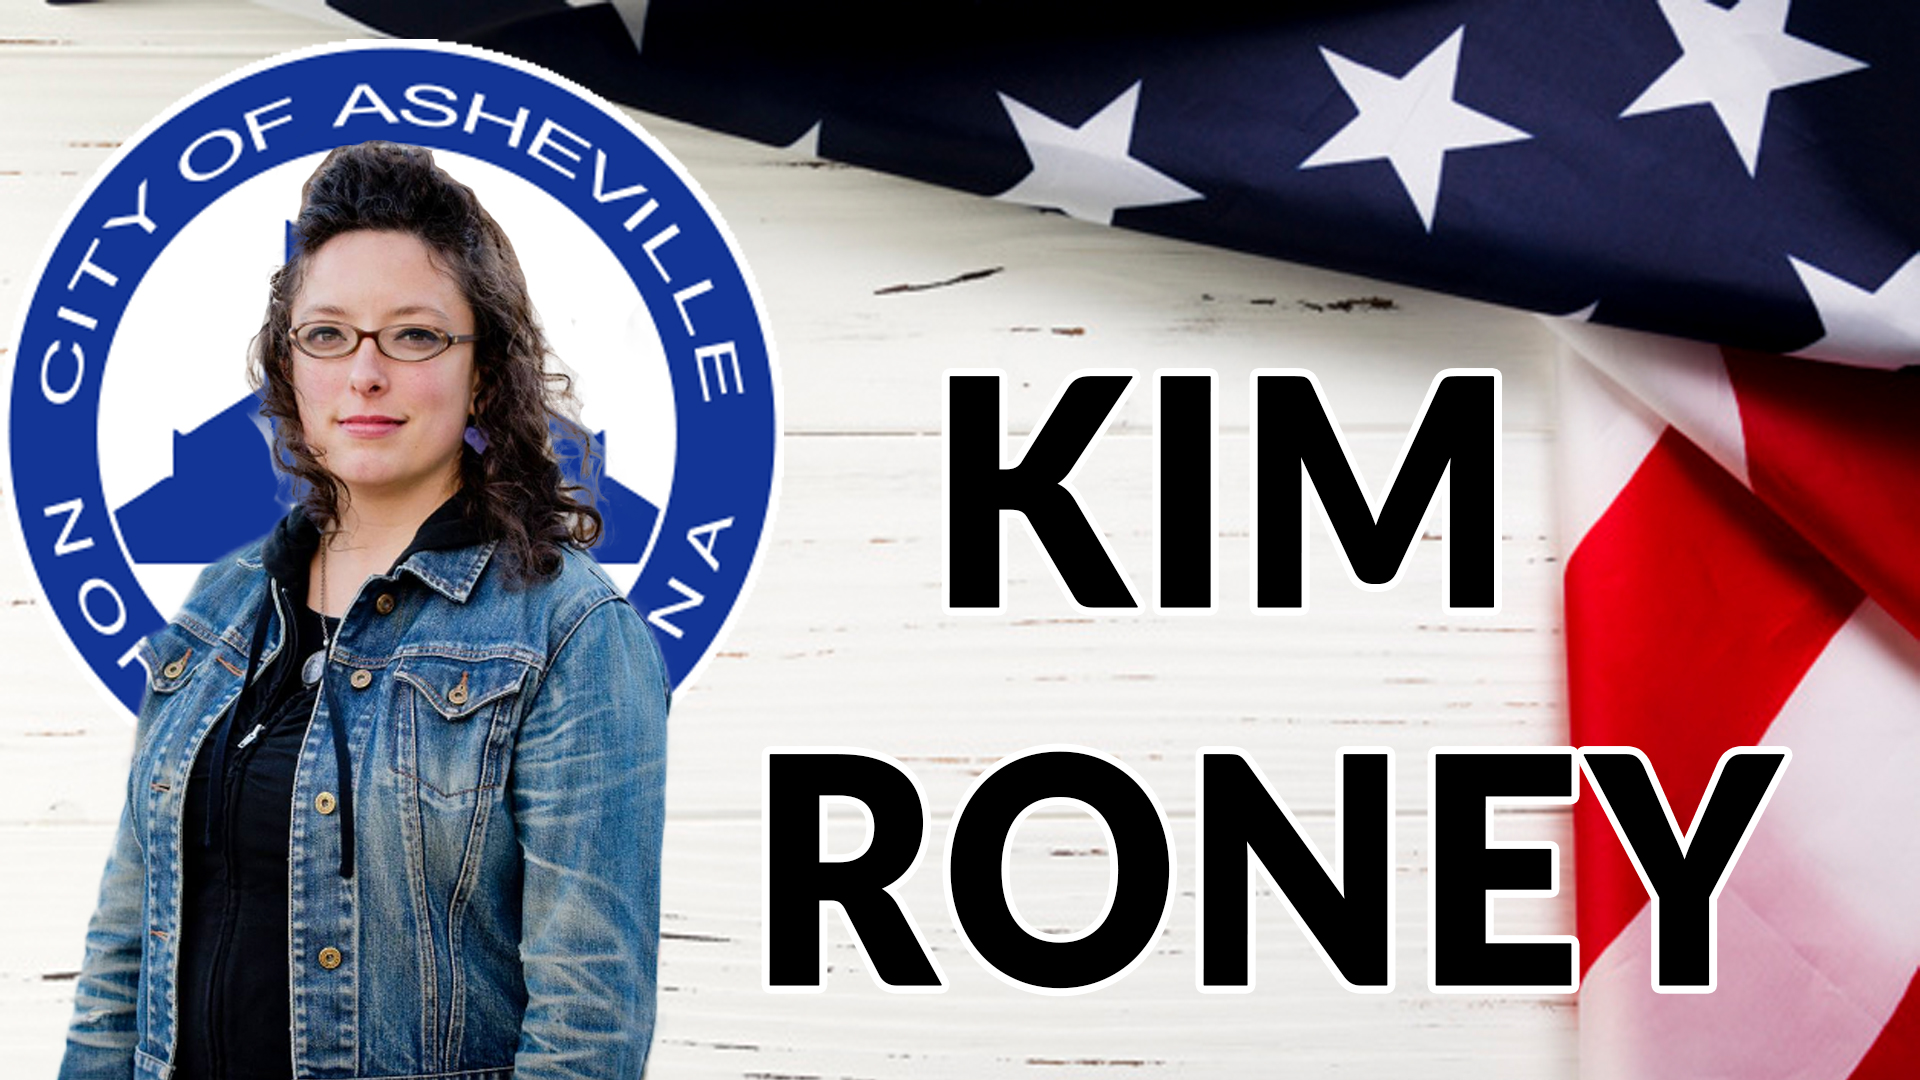 Kim Roney, Asheville City Council Candidate